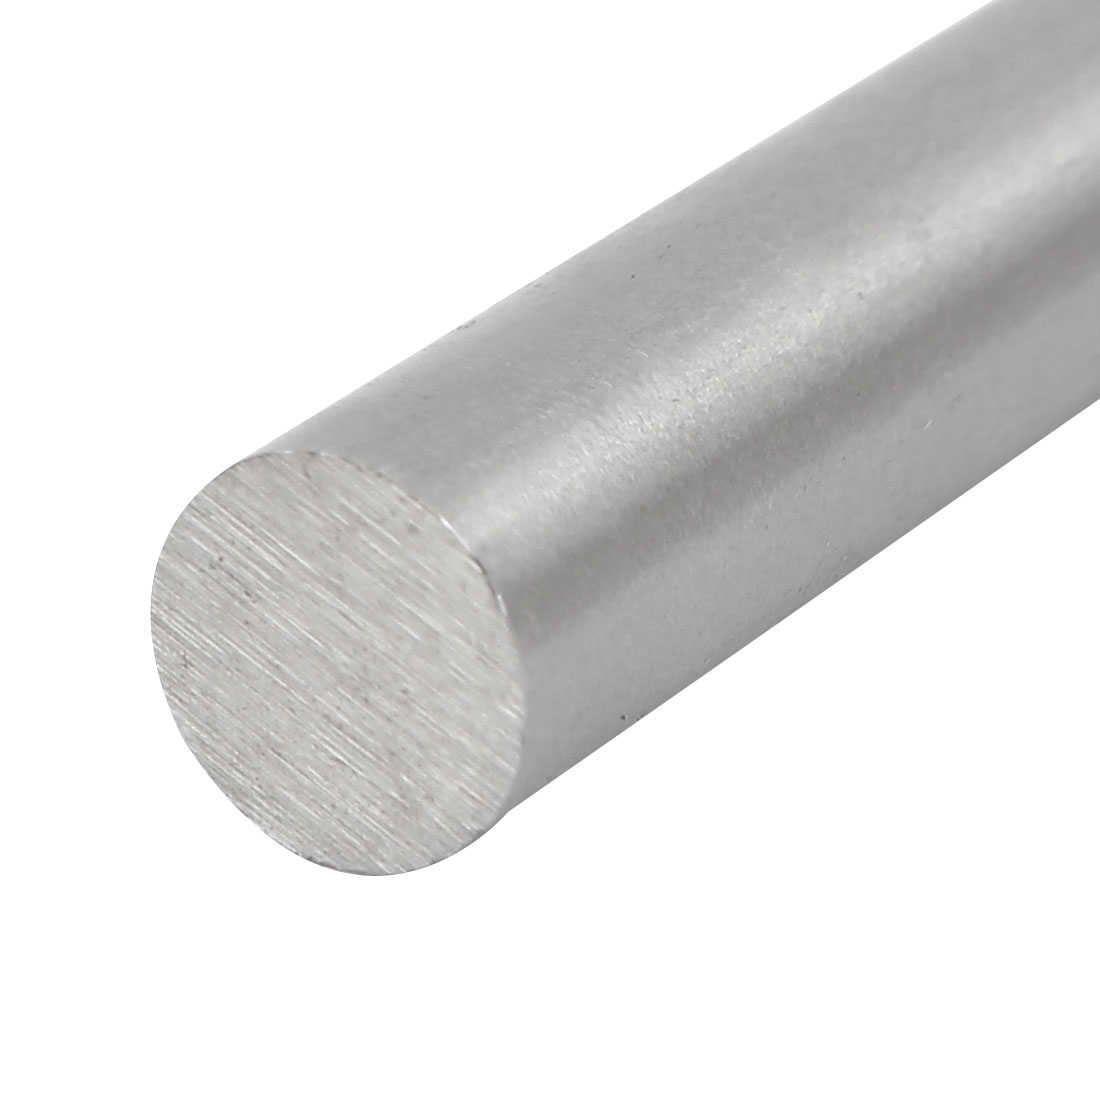 12mm Dia 100mm Length HSS Round Shaft Rod Bar Lathe Tools Gray 2pcs